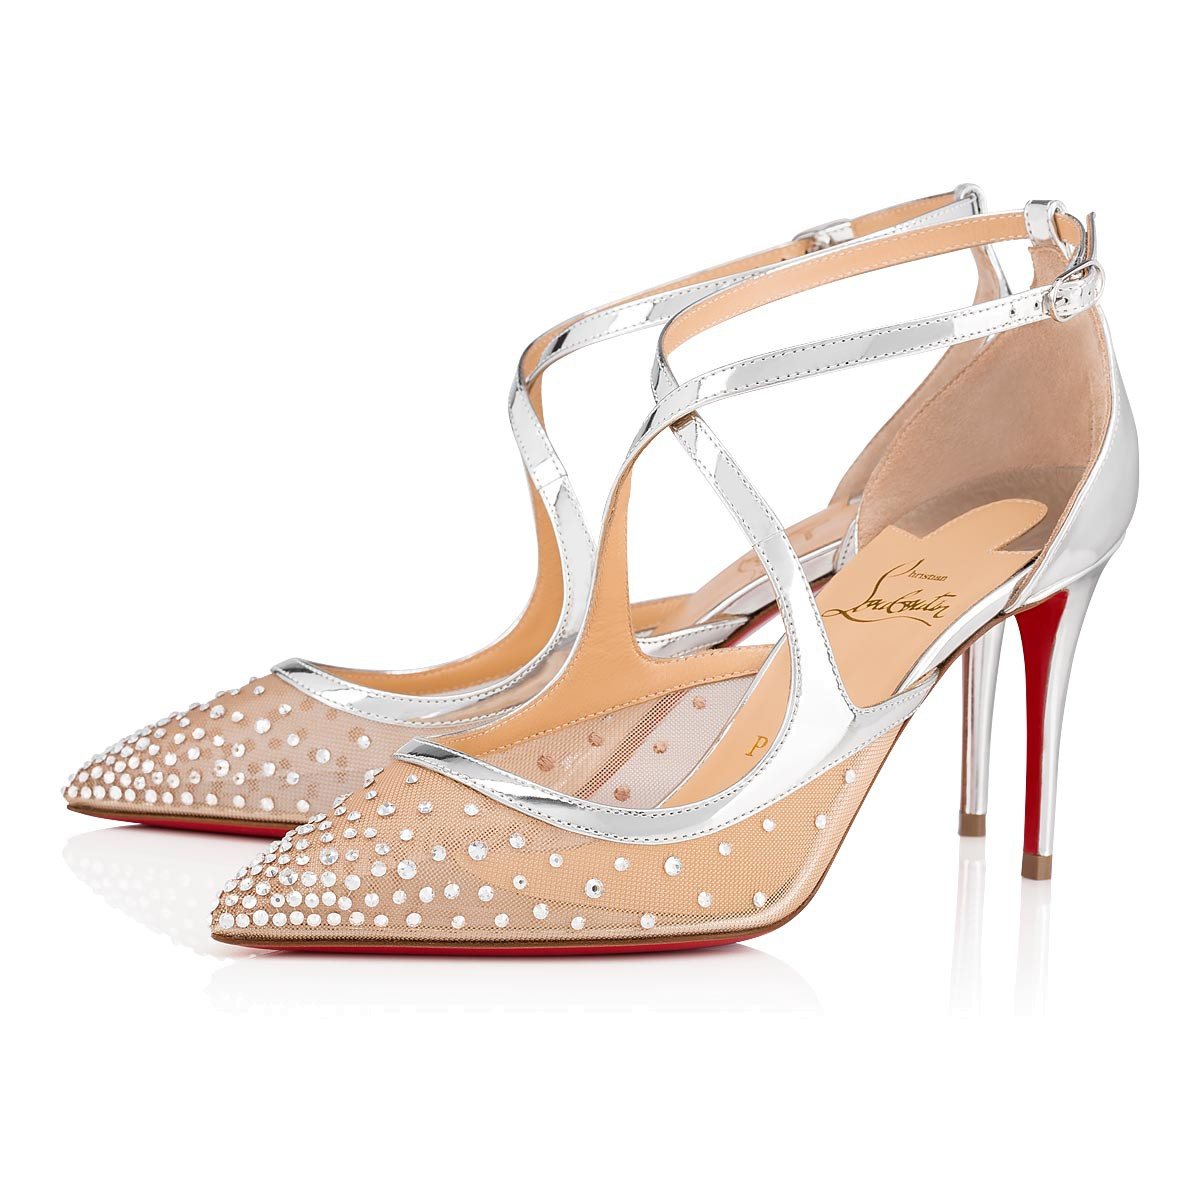 huge discount 733cb 586c4 Twistissima Strass 85 Version Silver Dentelle - Women Shoes - Christian  Louboutin